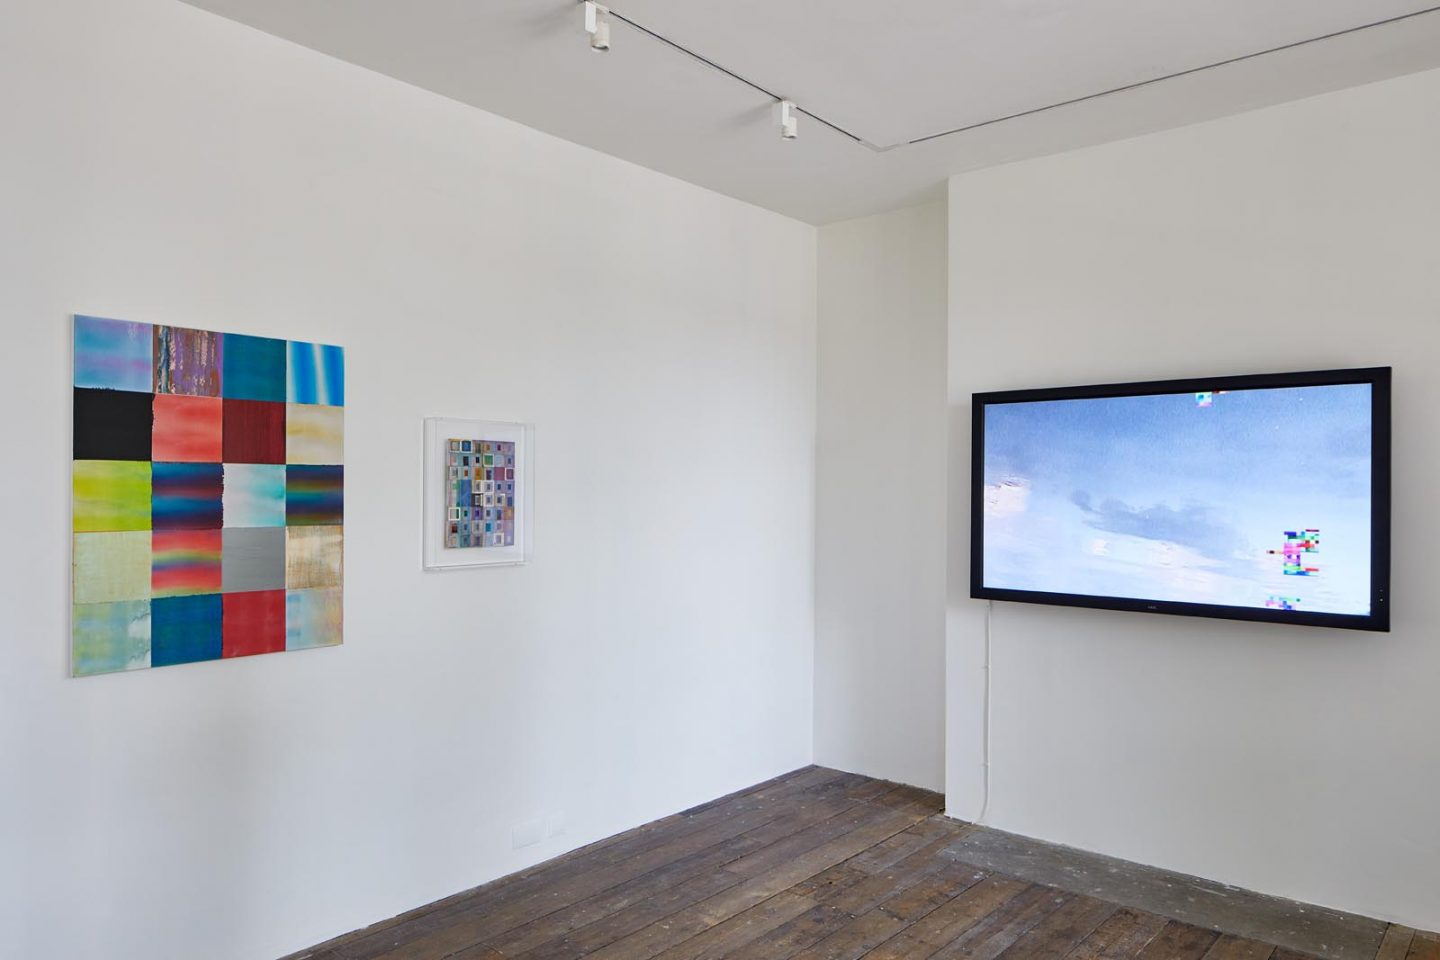 Luiz Zerbini, Intuitive Ratio, installation view at the South London Gallery, 2018. Photo: Andy Stagg